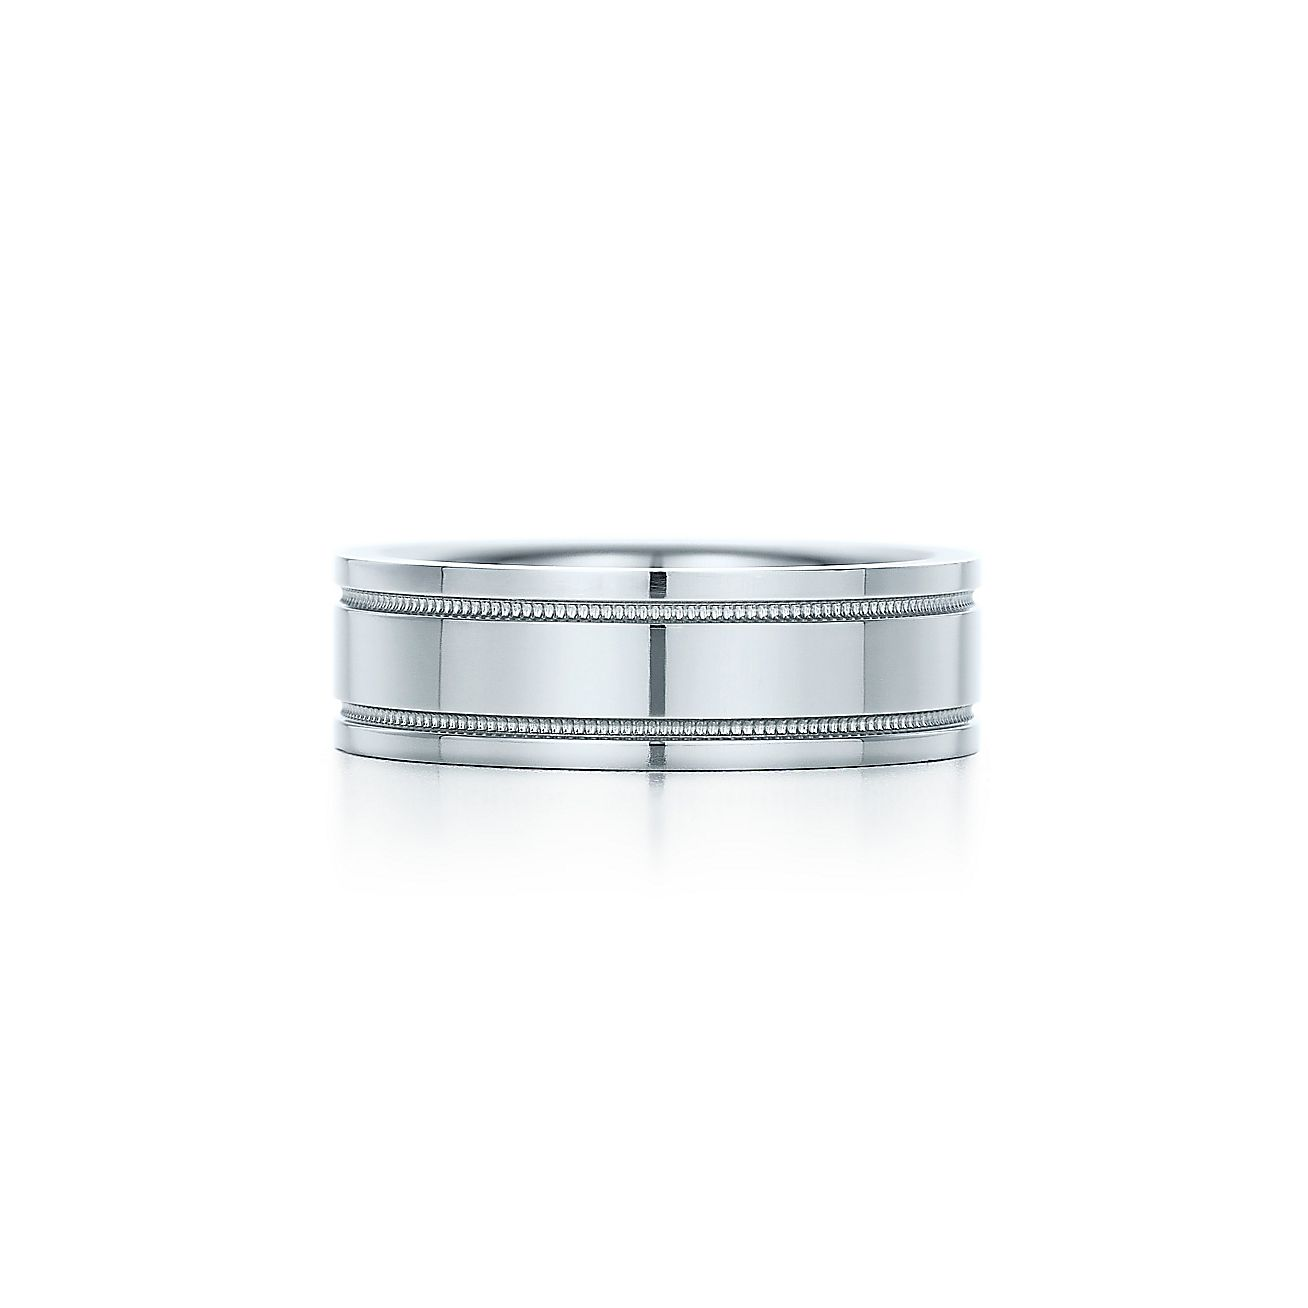 Tiffany flat double milgrain wedding band ring in platinum 6 mm tiffany flat double milgrain wedding band ring in platinum 6 mm wide tiffany co junglespirit Image collections